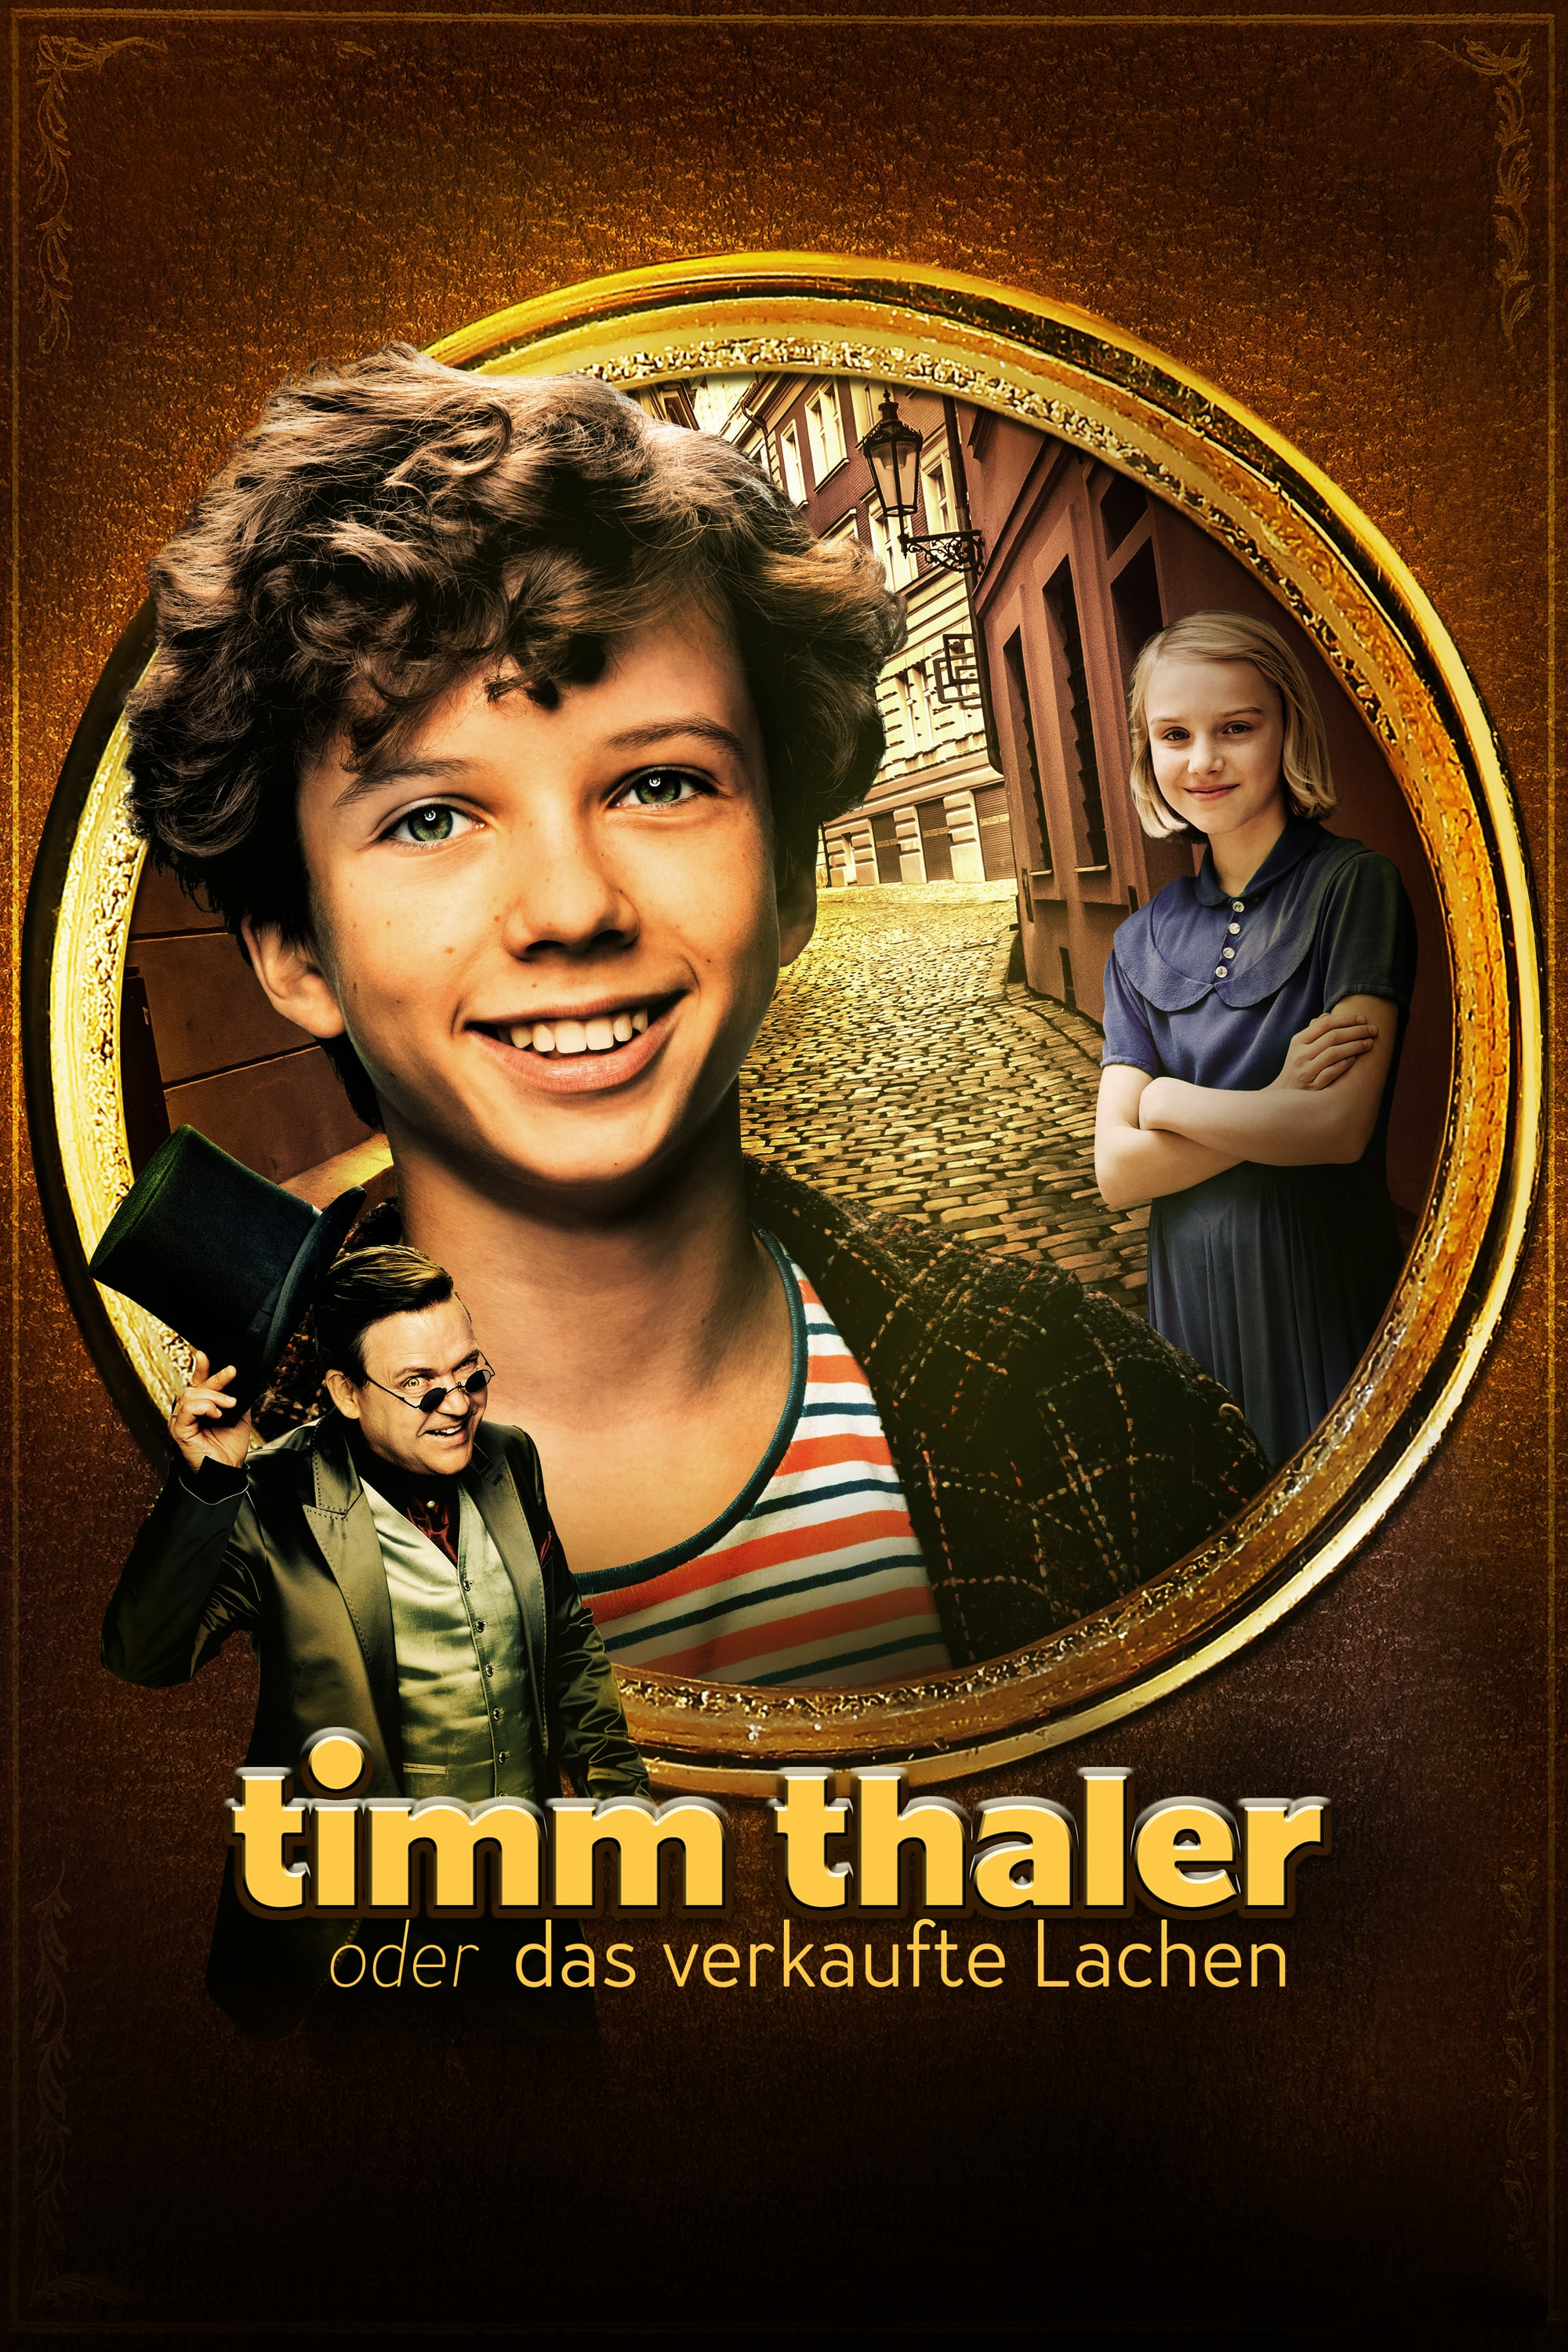 The Legend of Timm Thaler (or The Boy Who Sold His Laughter